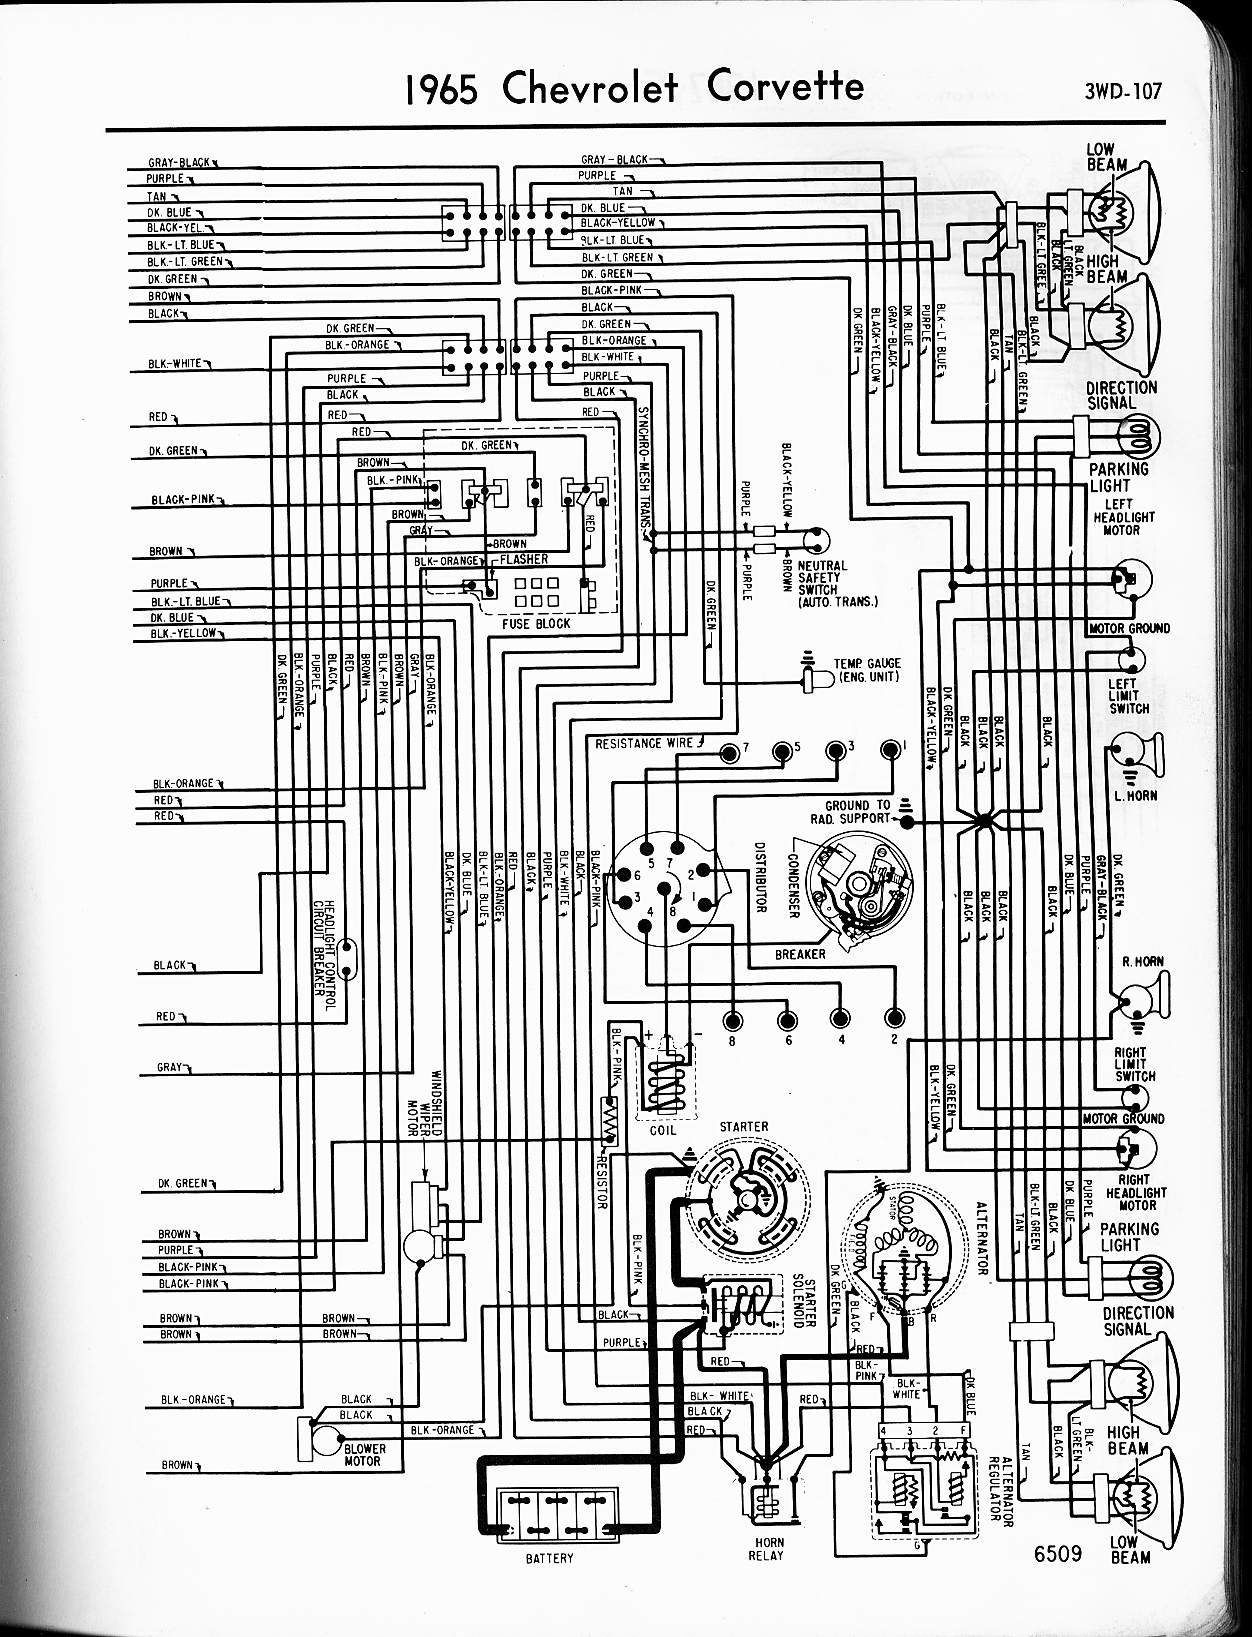 1973 Corvette Wiring Diagram Another Blog About Camaro Air Conditioning 76 Stingray Rh Twosoutherndivas Co